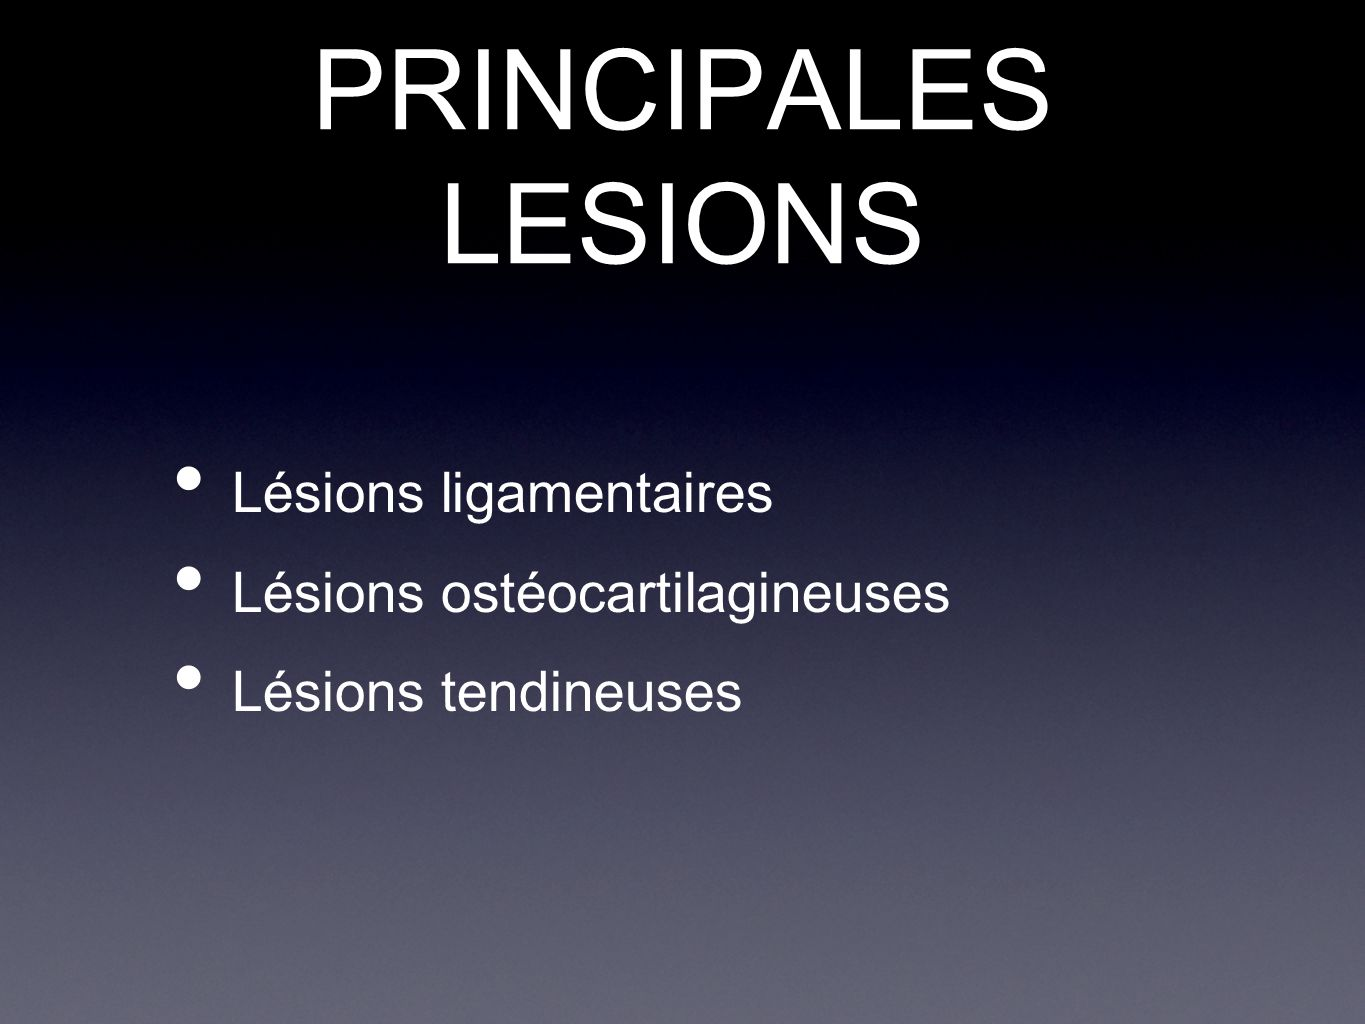 PRINCIPALES LESIONS Lésions ligamentaires Lésions ostéocartilagineuses Lésions tendineuses